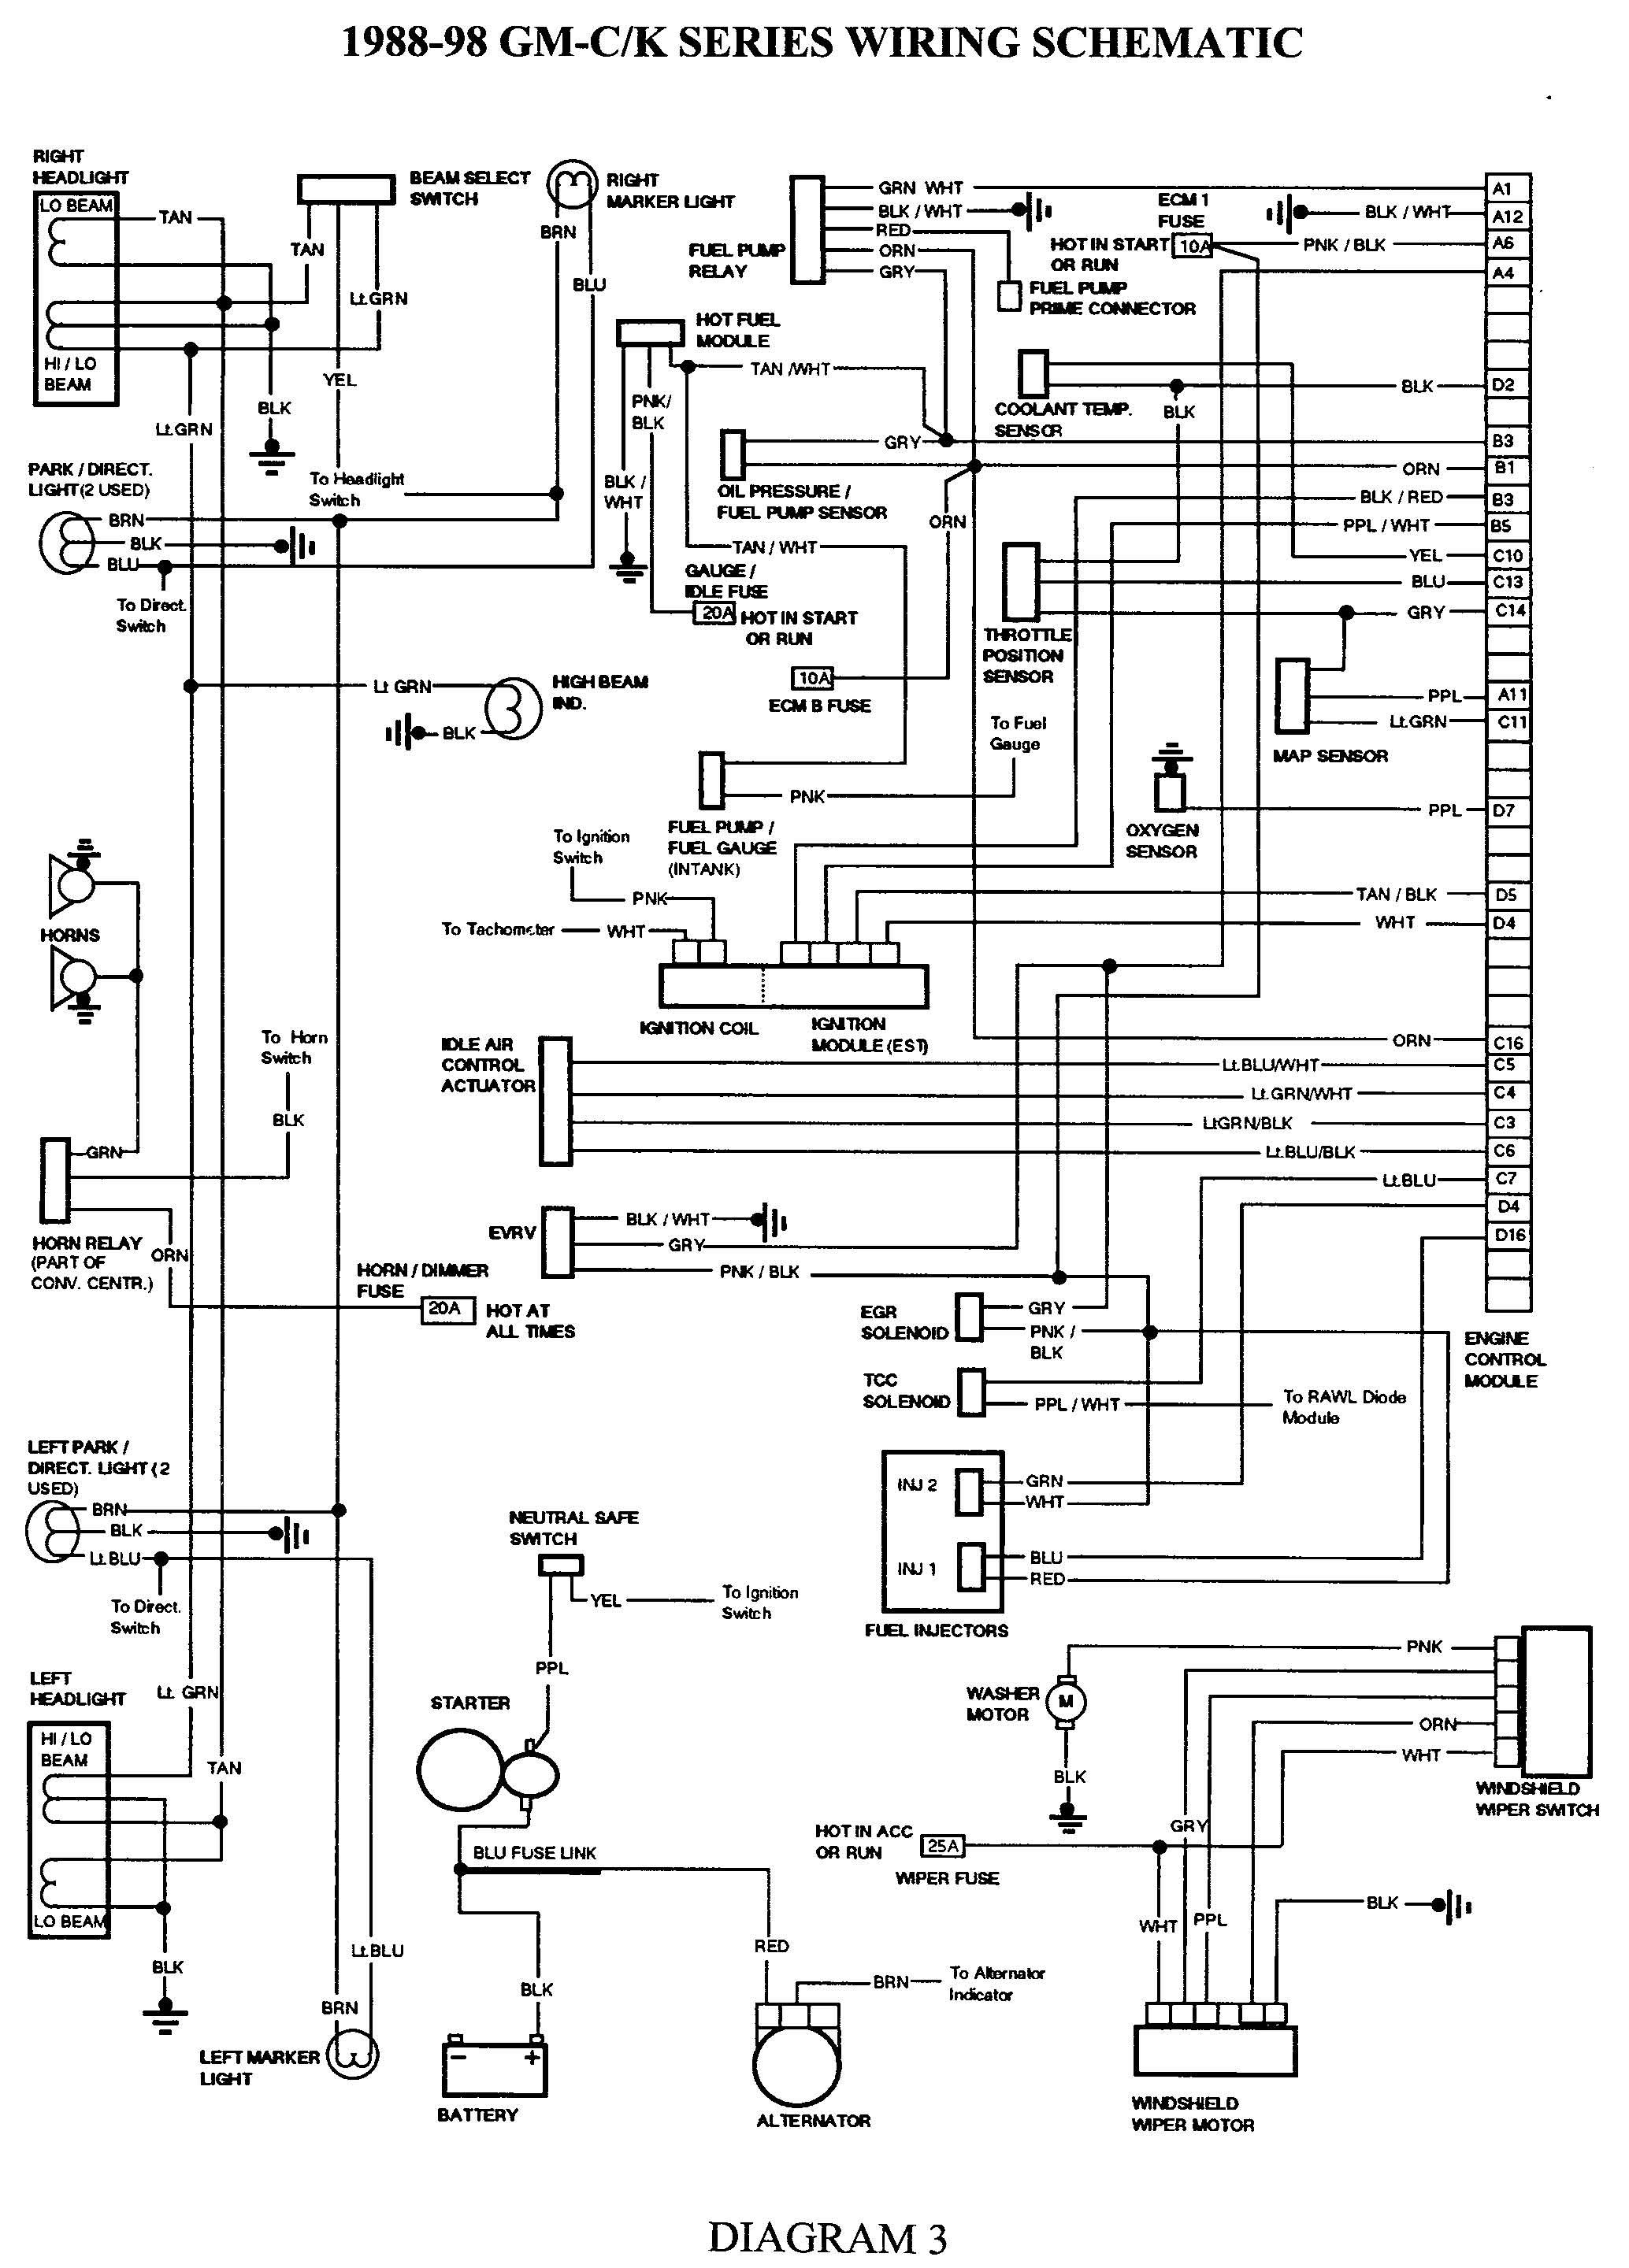 Wiring Diagram For Chevy Truck Doors Just Wiring Data 1961 Chevy Wiring  Diagram 1959 Chevy Pickup Wiring Diagram